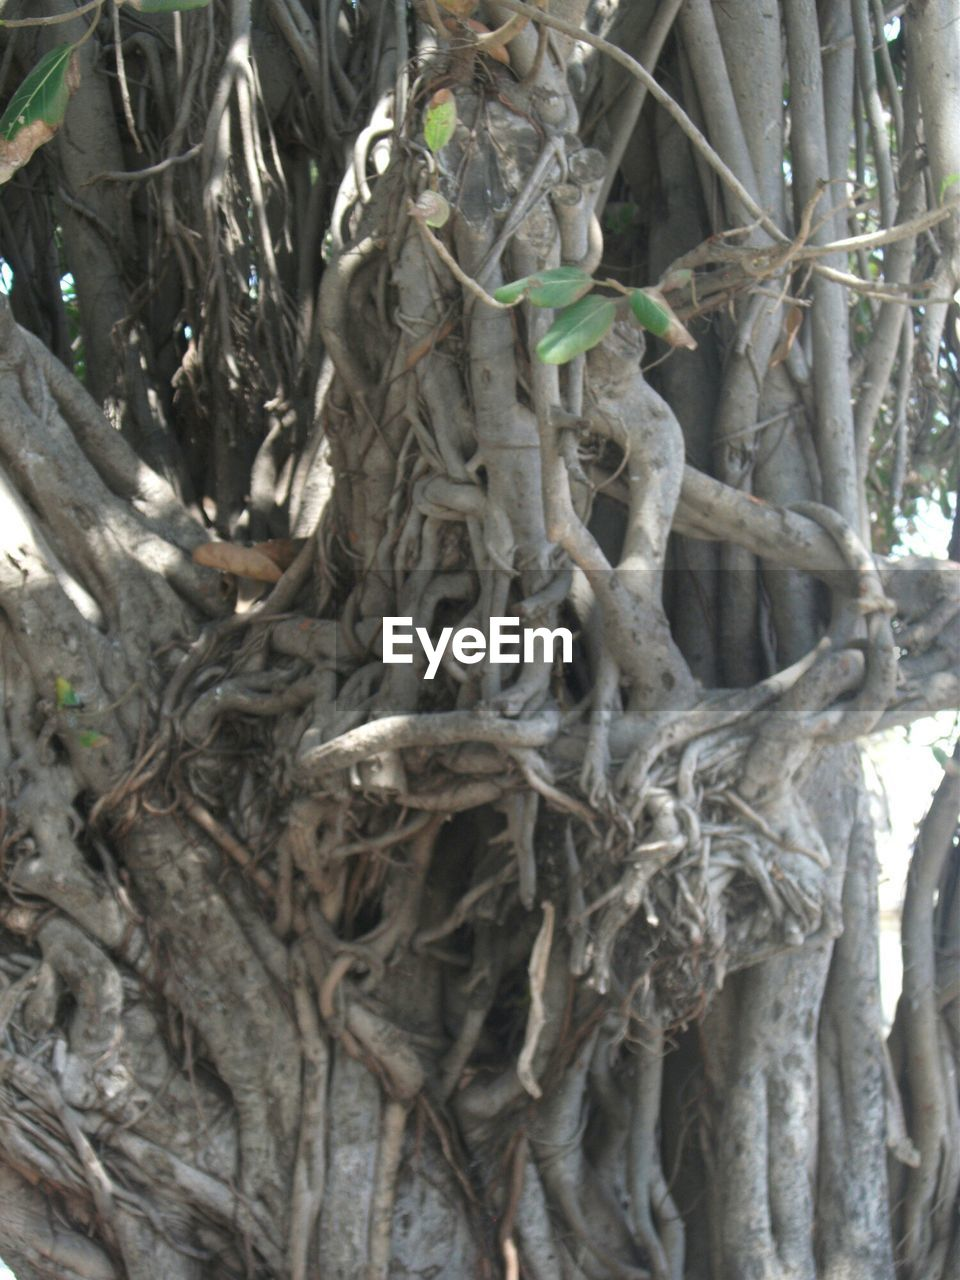 tree, tree trunk, root, day, no people, nature, outdoors, growth, branch, close-up